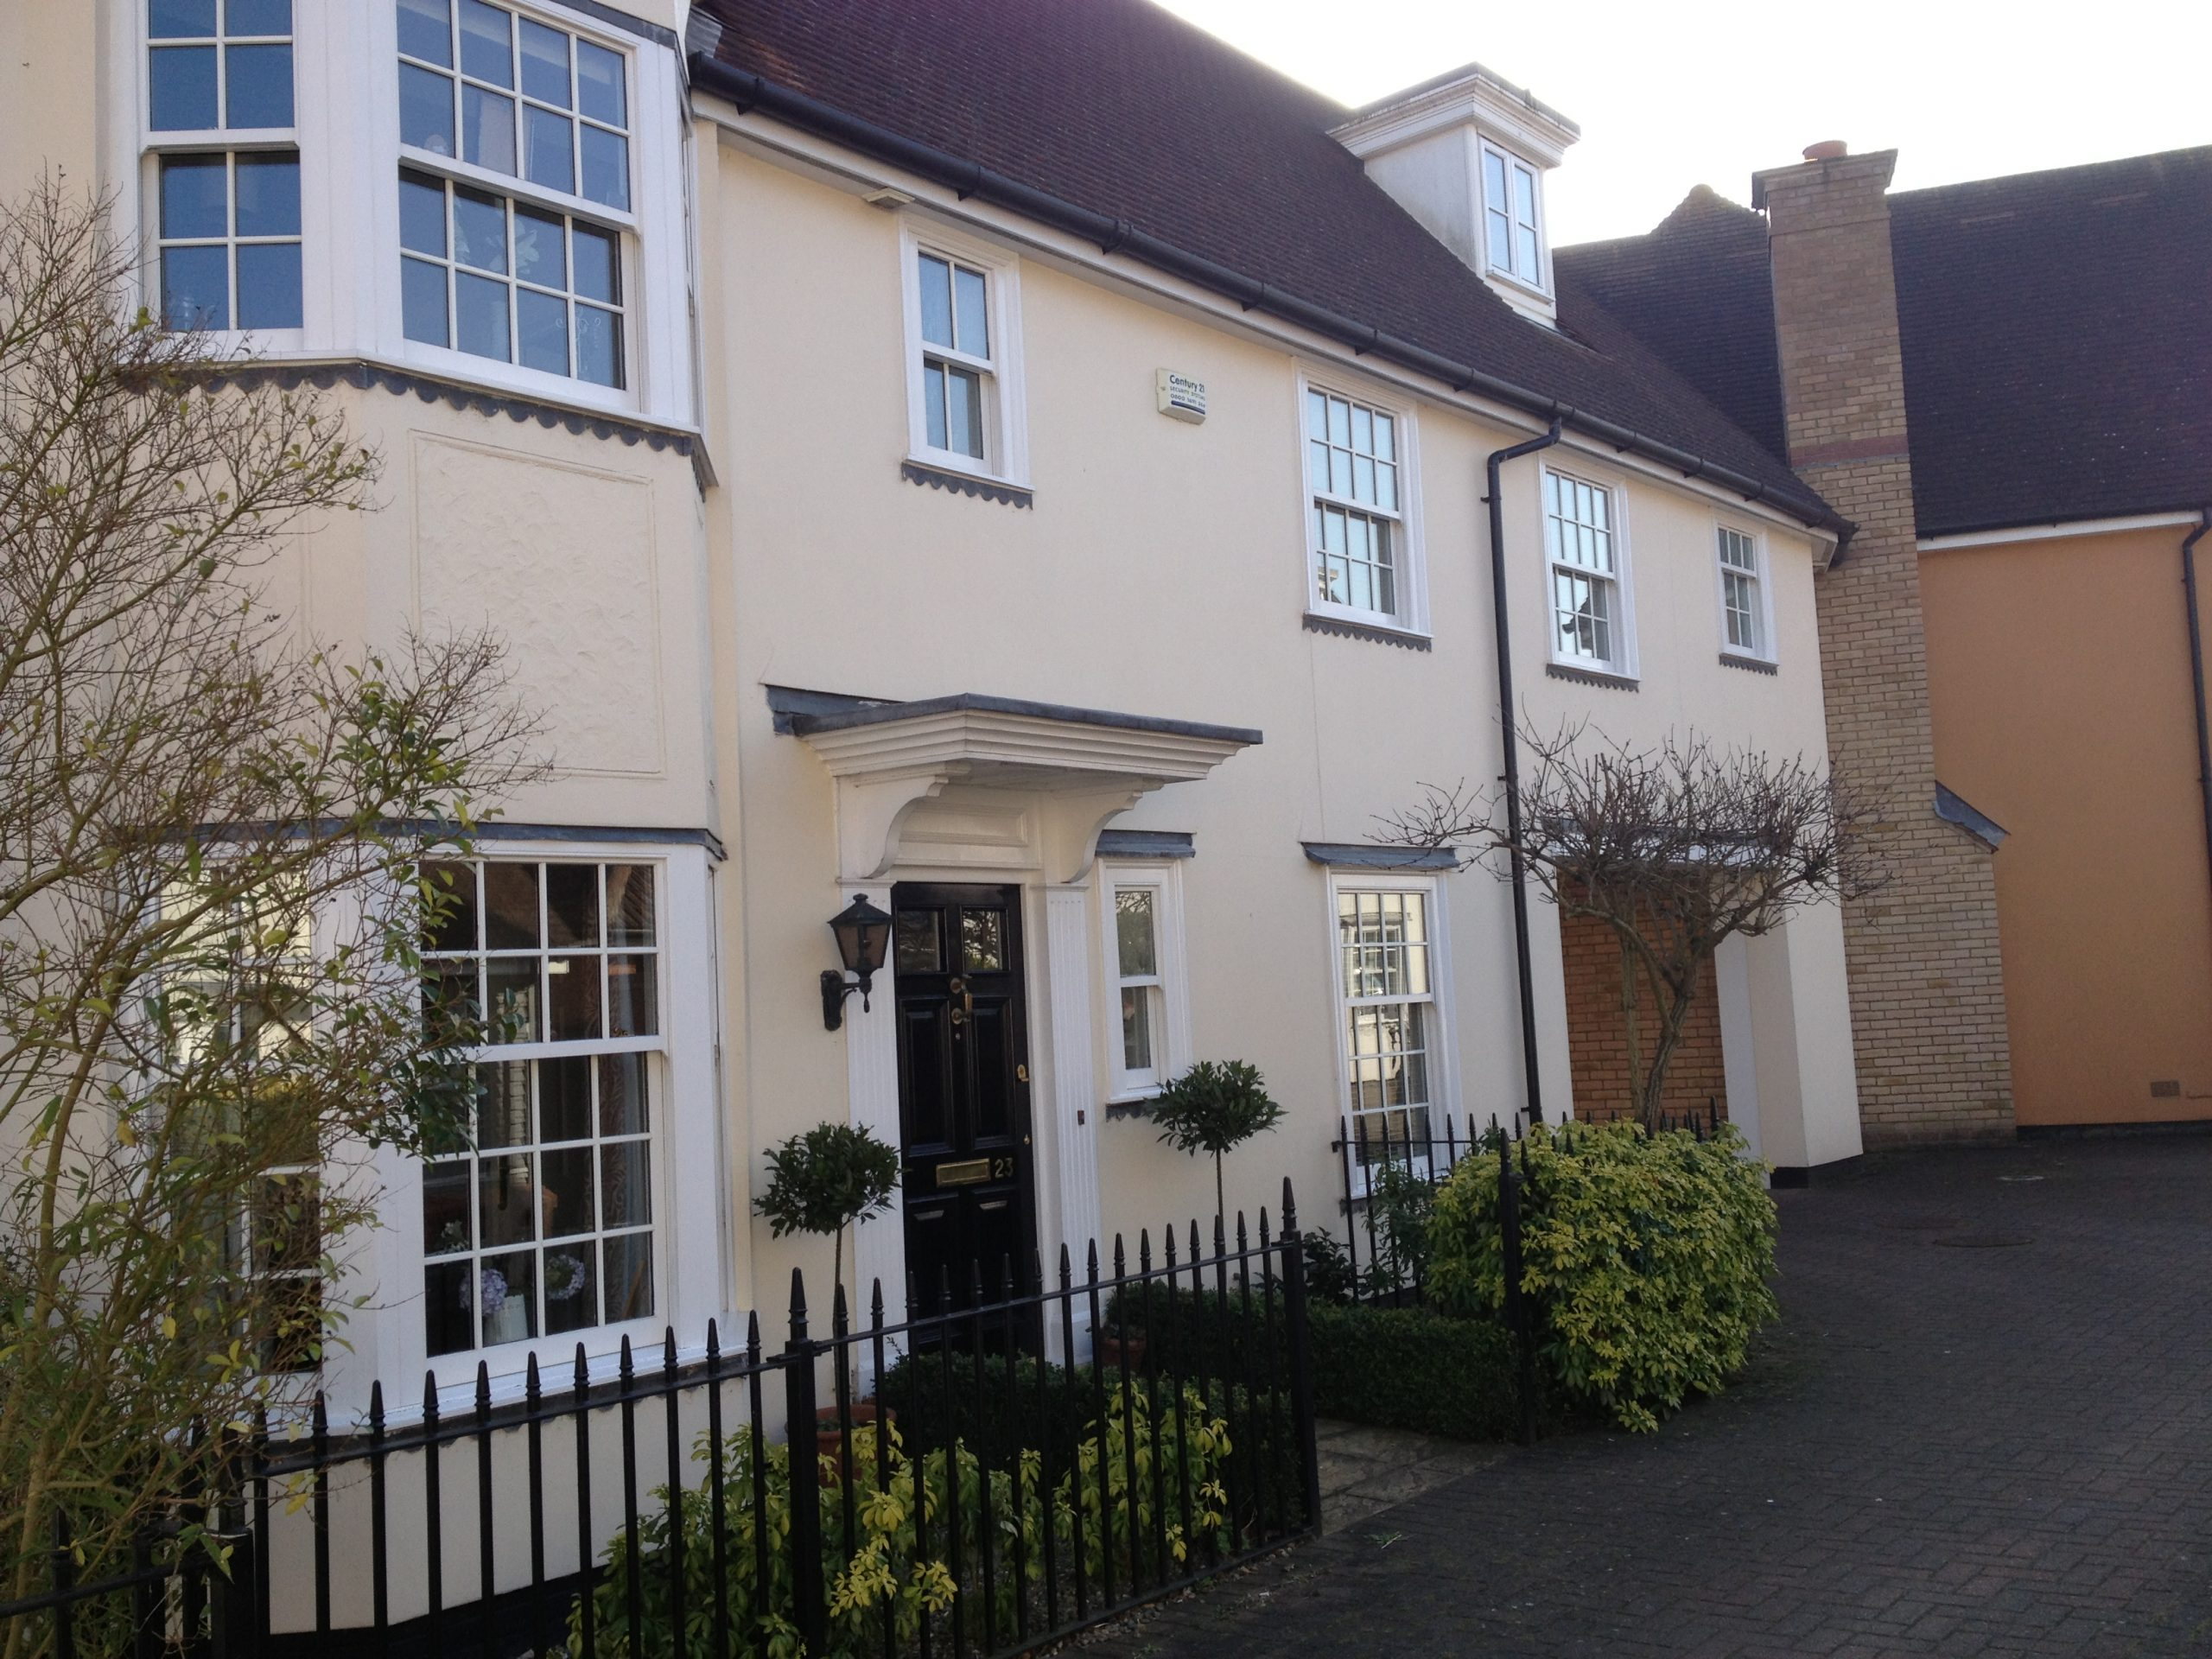 Give you the benefit of our 30 years experience in residential development?